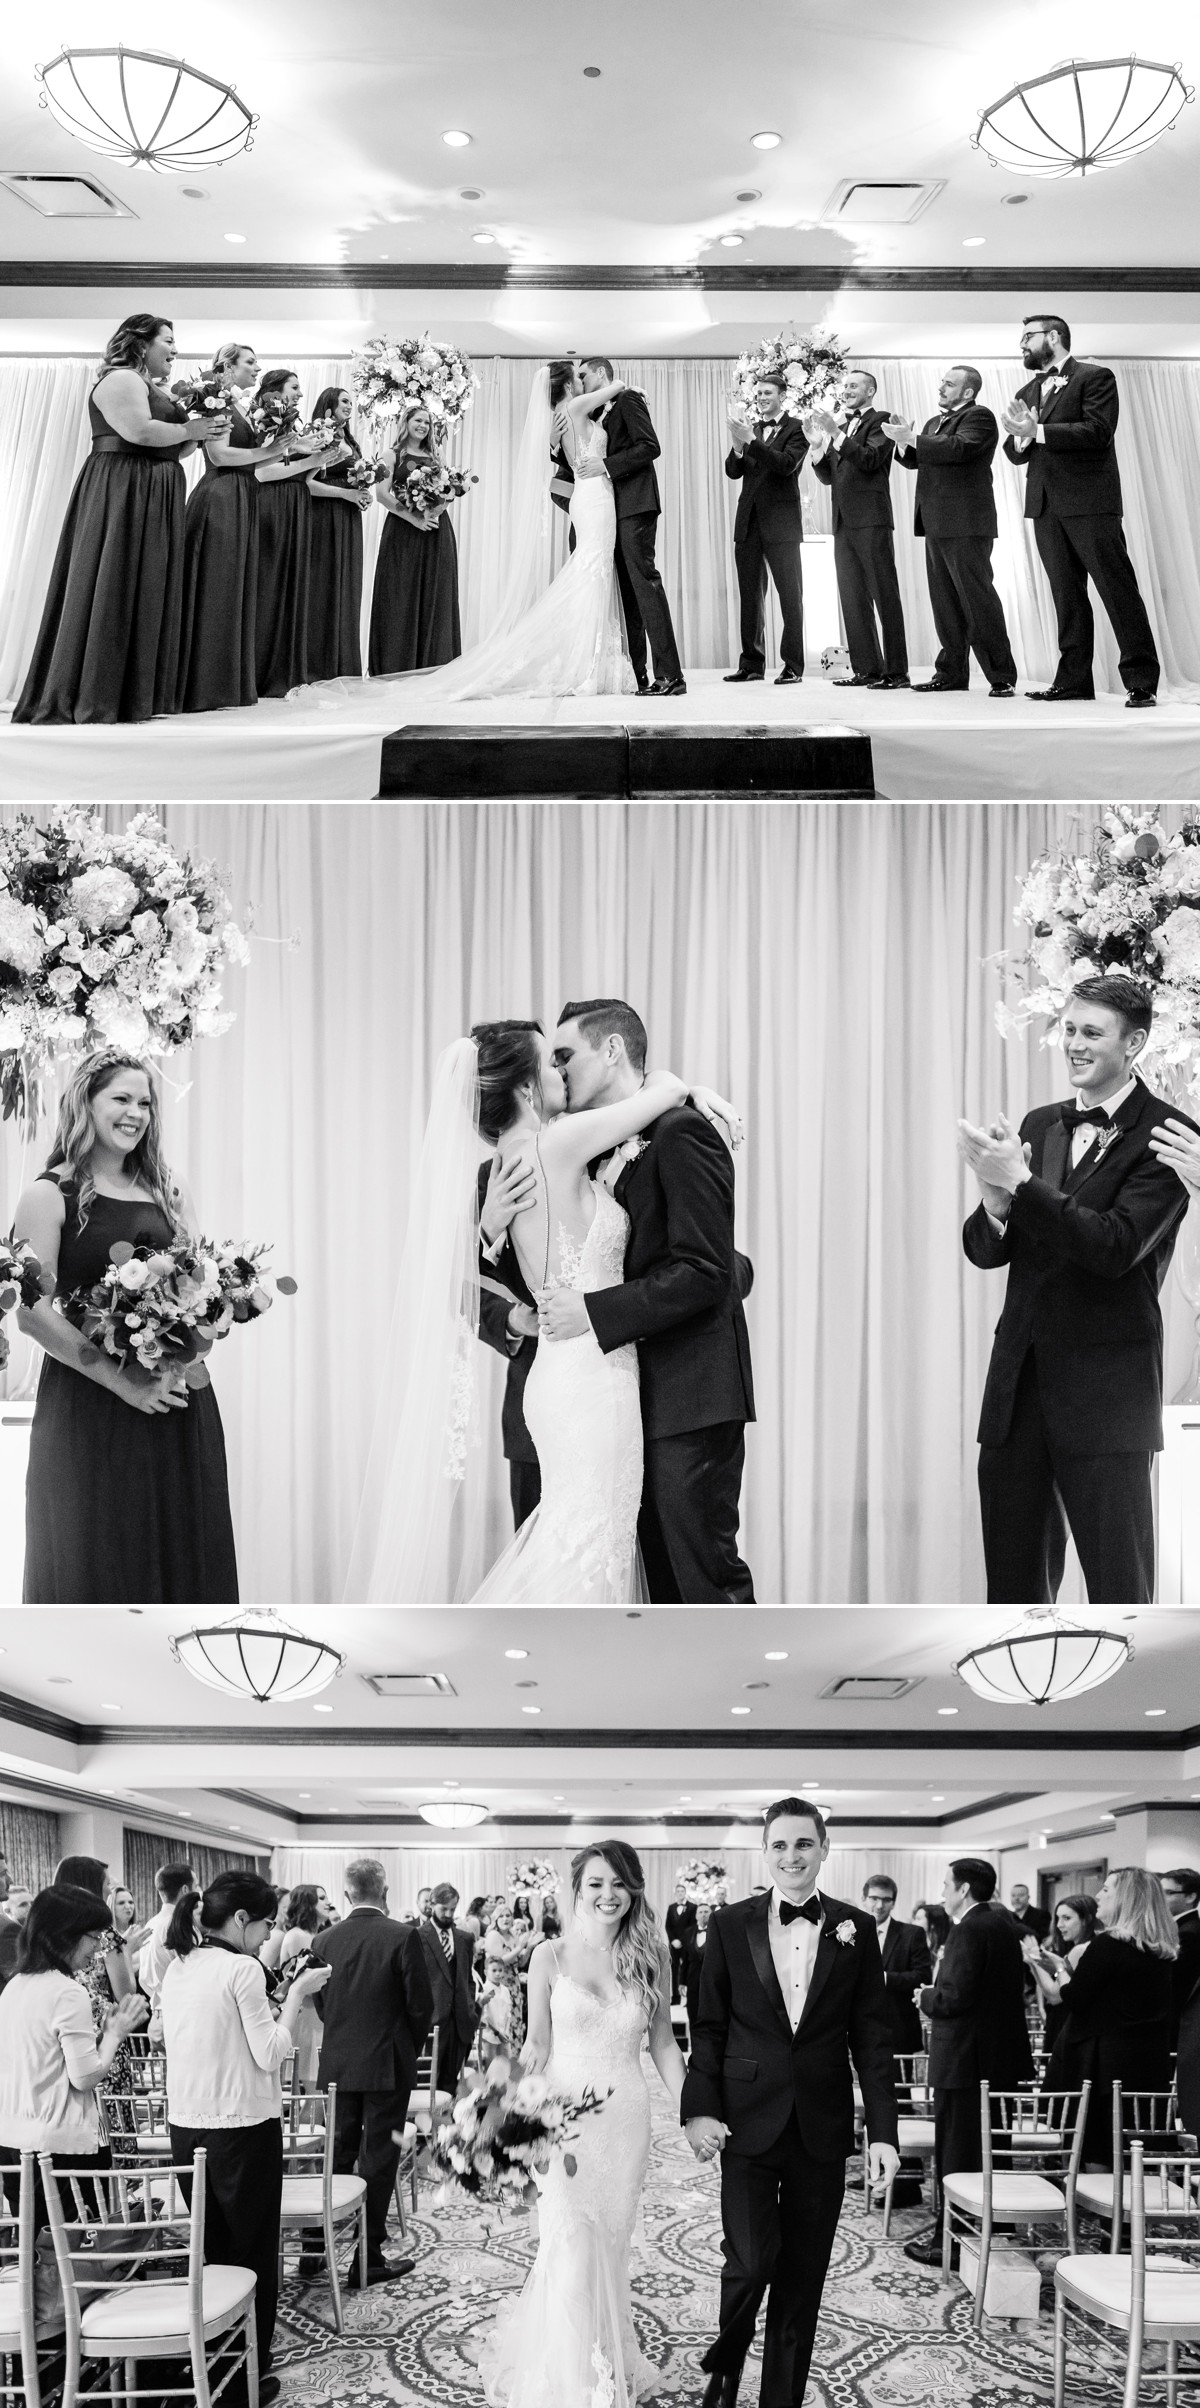 Manor House Wedding at The Houstonian Hotel Ceremony Bride and Groom Kiss